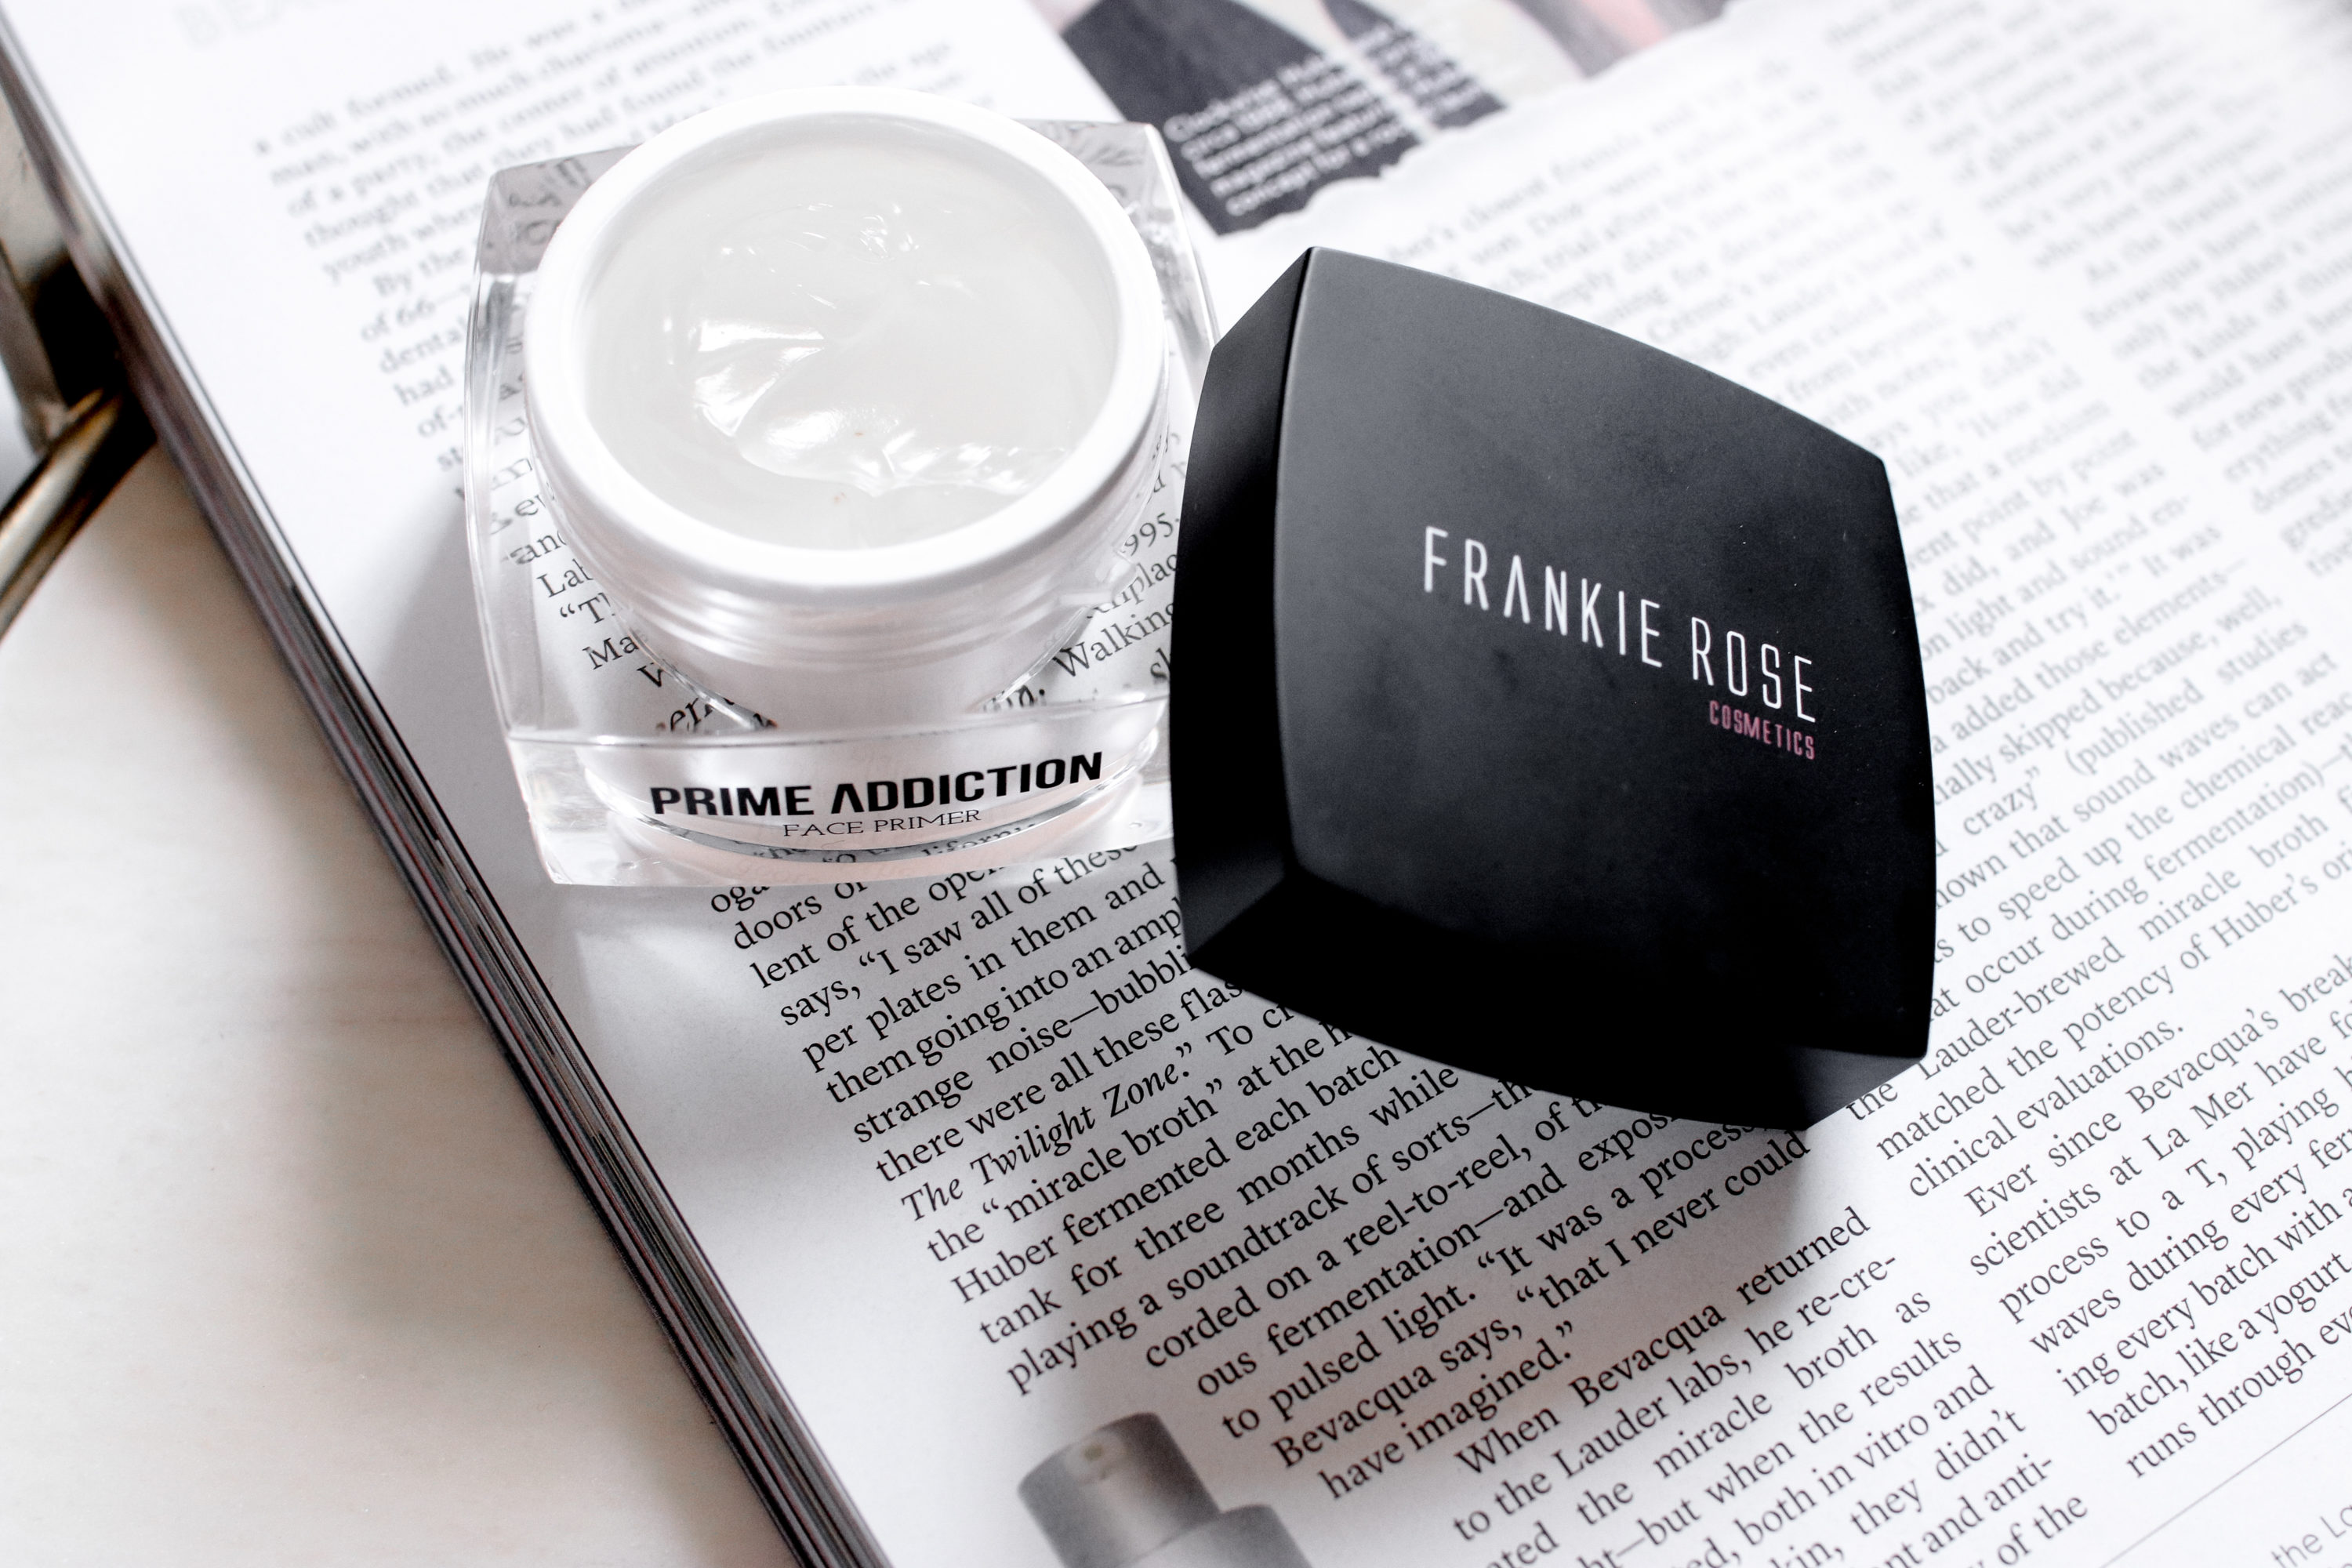 Frankie Rose Cosmetics Prime Addiction Review | The Beauty Vanity